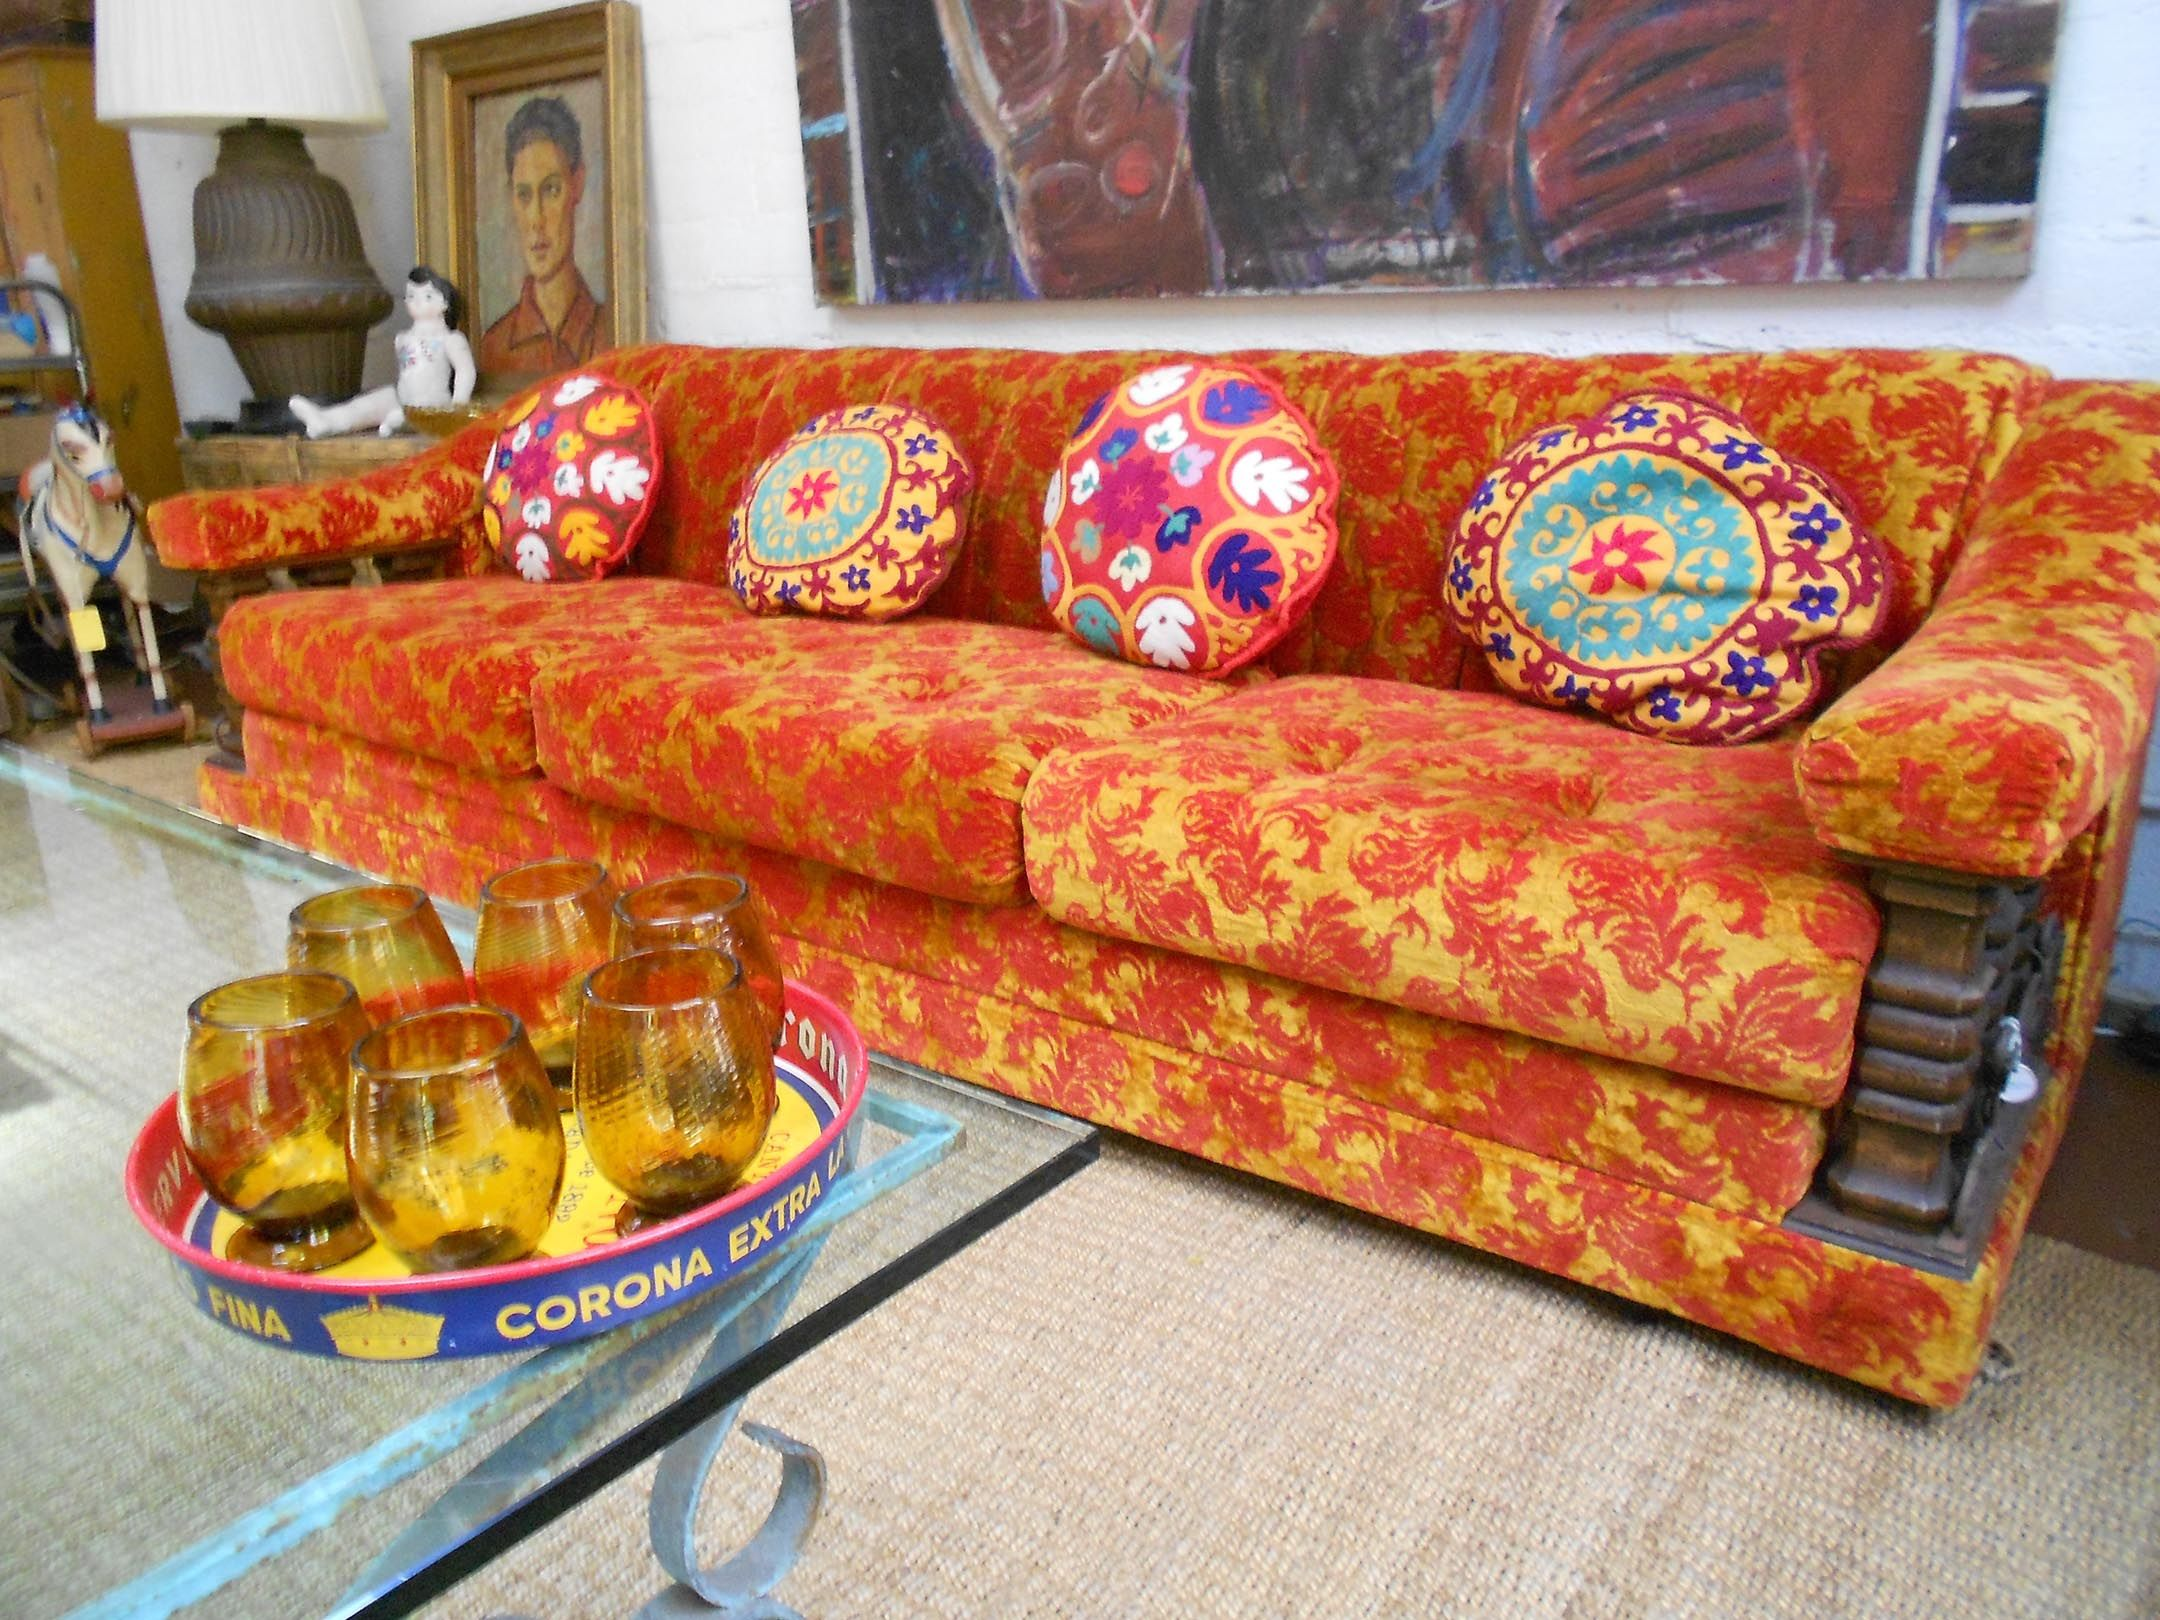 Orange Red Brocade Sofa 1960 S Uzbeki Pillows Handn Mexican Gl This Outrageous Couch Is An Original Sears Piece Mid 60